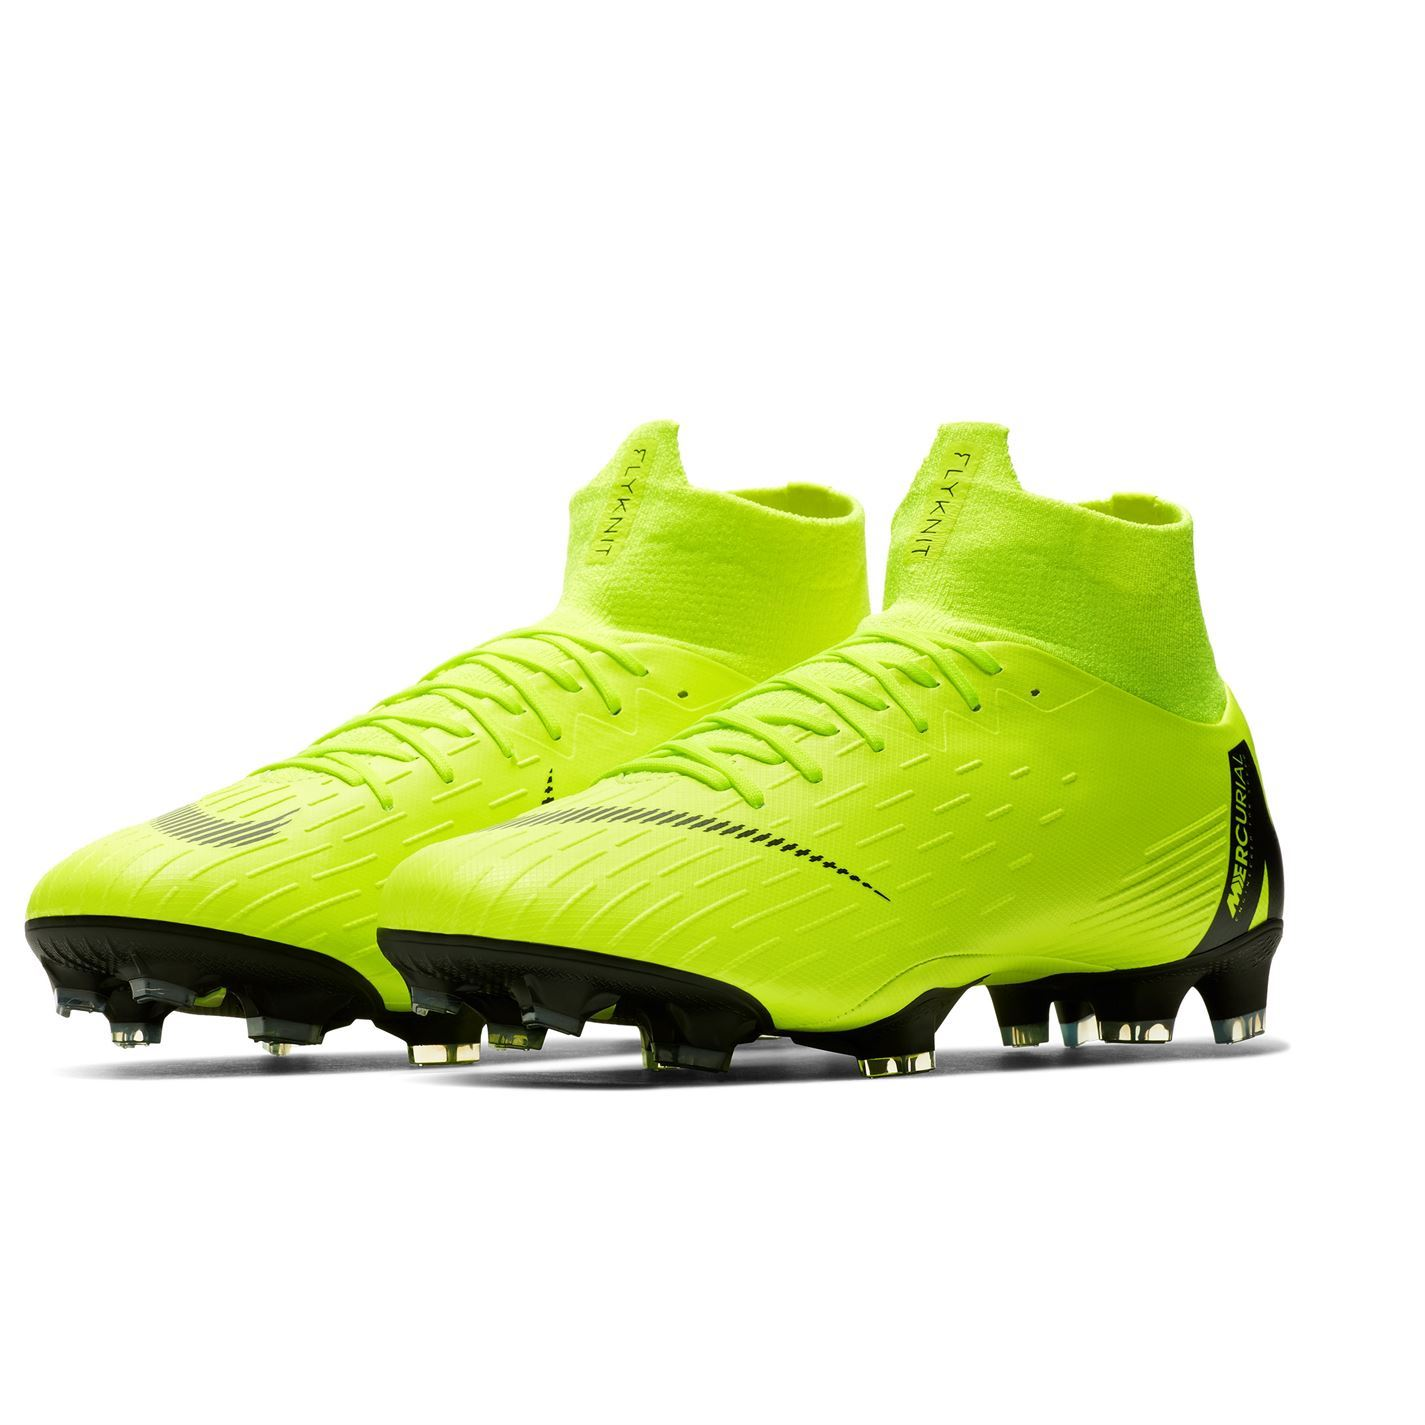 save off 508b8 bb30e Details about Nike Mercurial Superfly Pro Firm Ground Football Boots Mens  Yellow Soccer Cleats